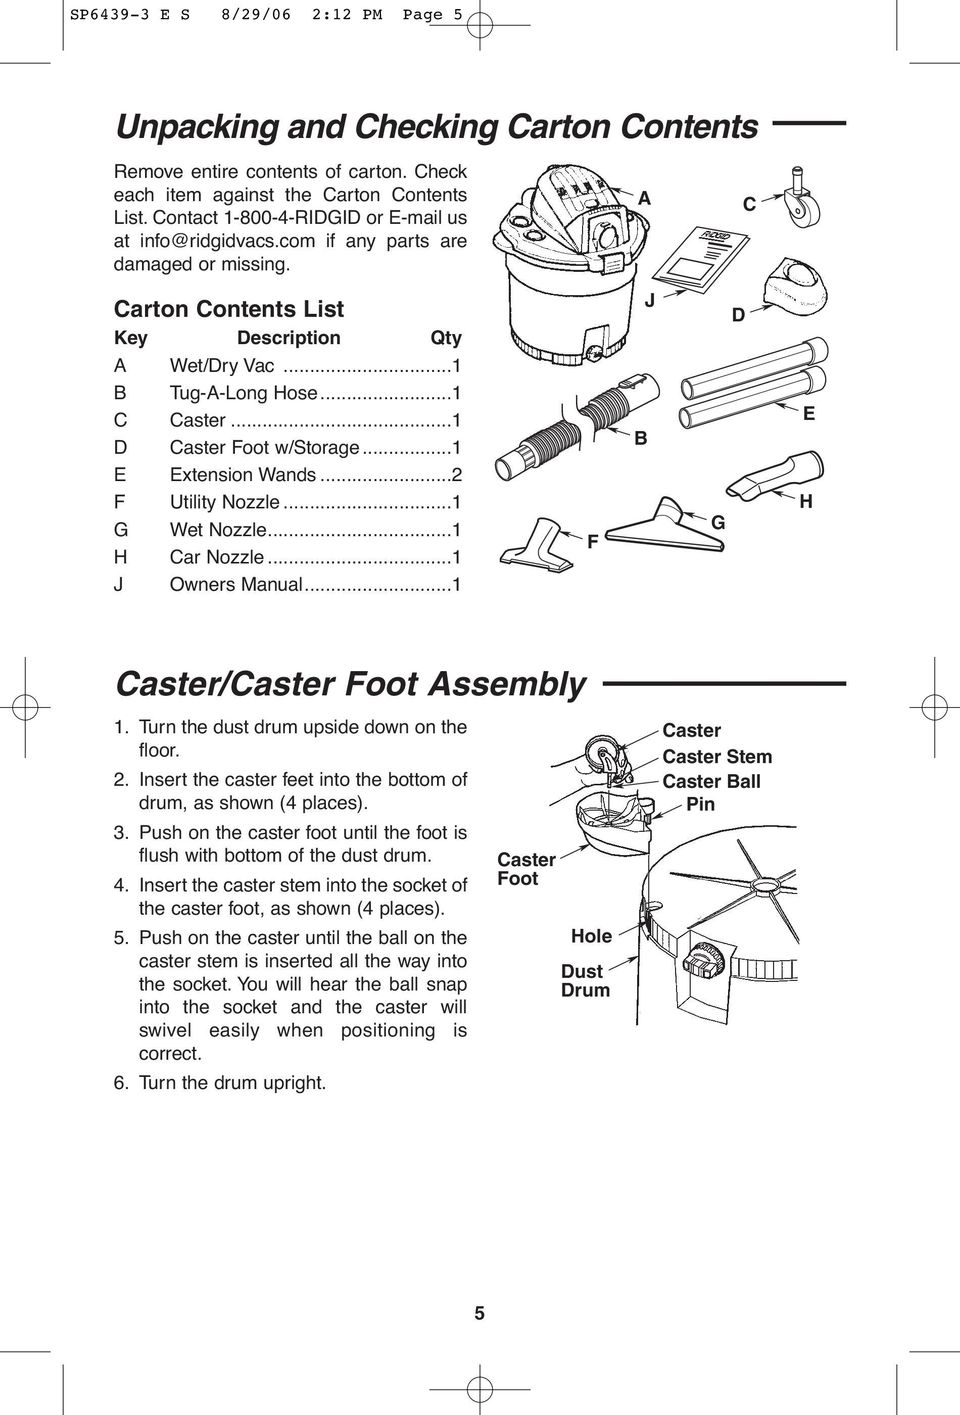 ..1 D Caster Foot w/storage...1 E Extension Wands...2 F Utility Nozzle...1 G Wet Nozzle...1 H Car Nozzle...1 J Owners Manual...1 F B J G D E H Caster/Caster Foot Assembly 1.